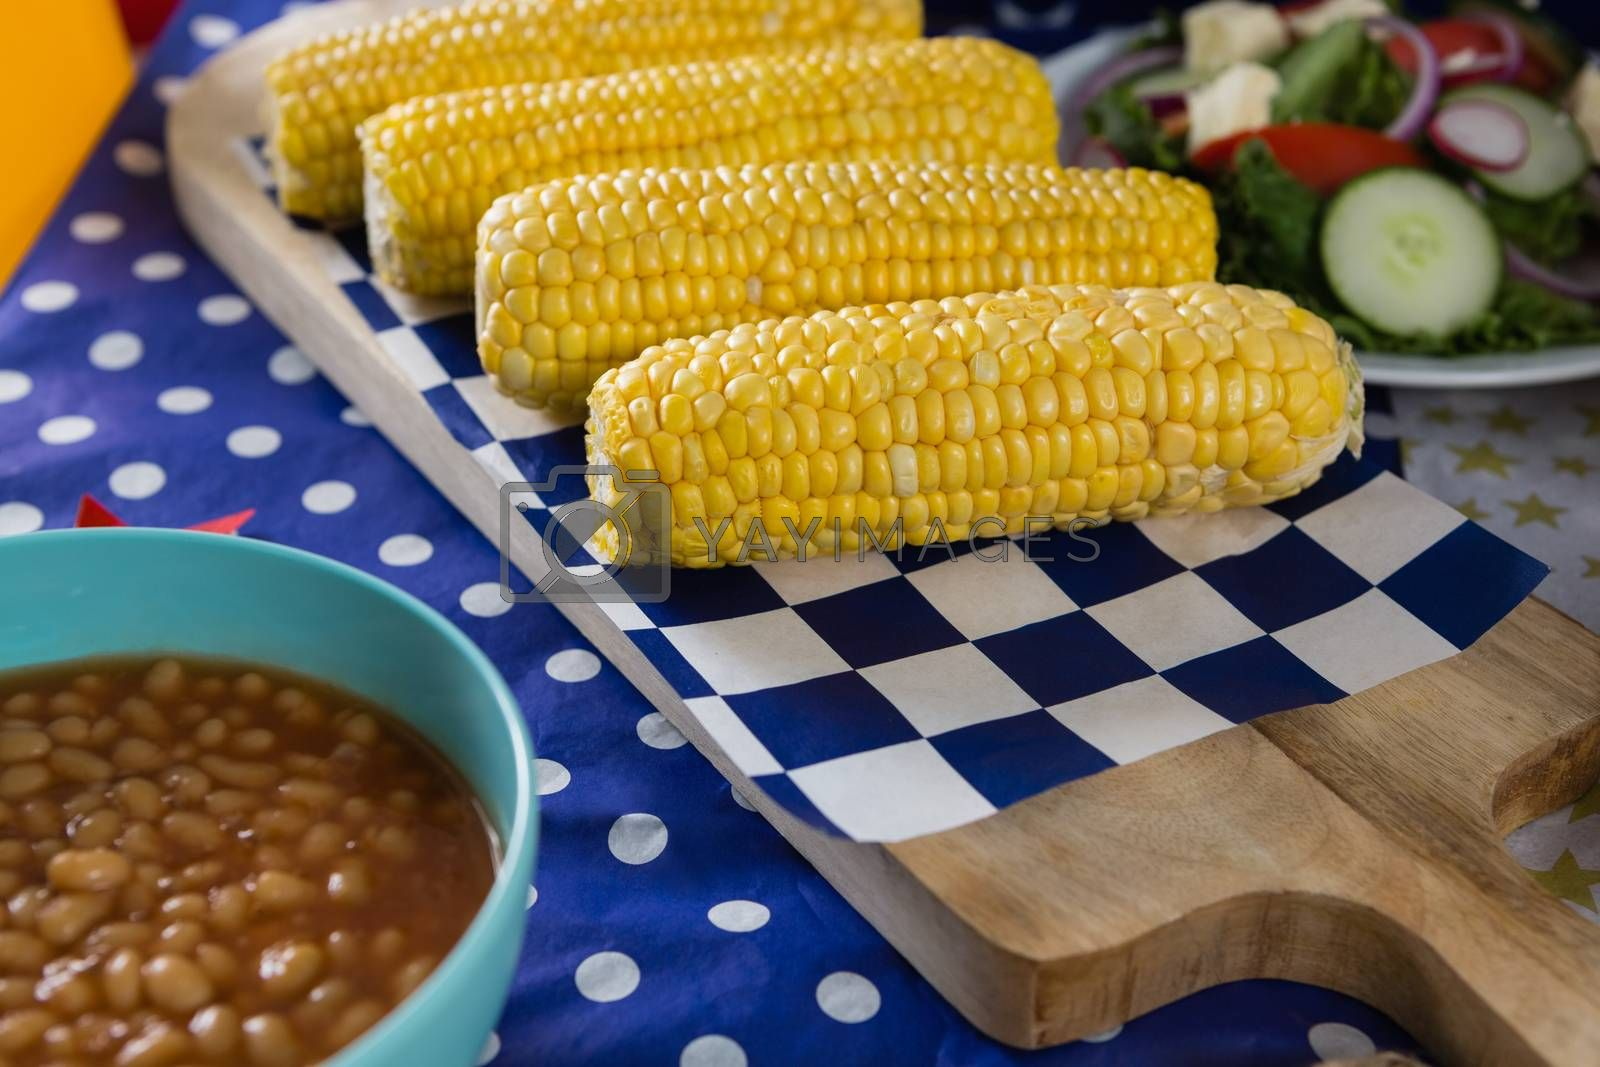 Royalty free image of Baked beans and corn cob on wooden table with 4th july theme by Wavebreakmedia